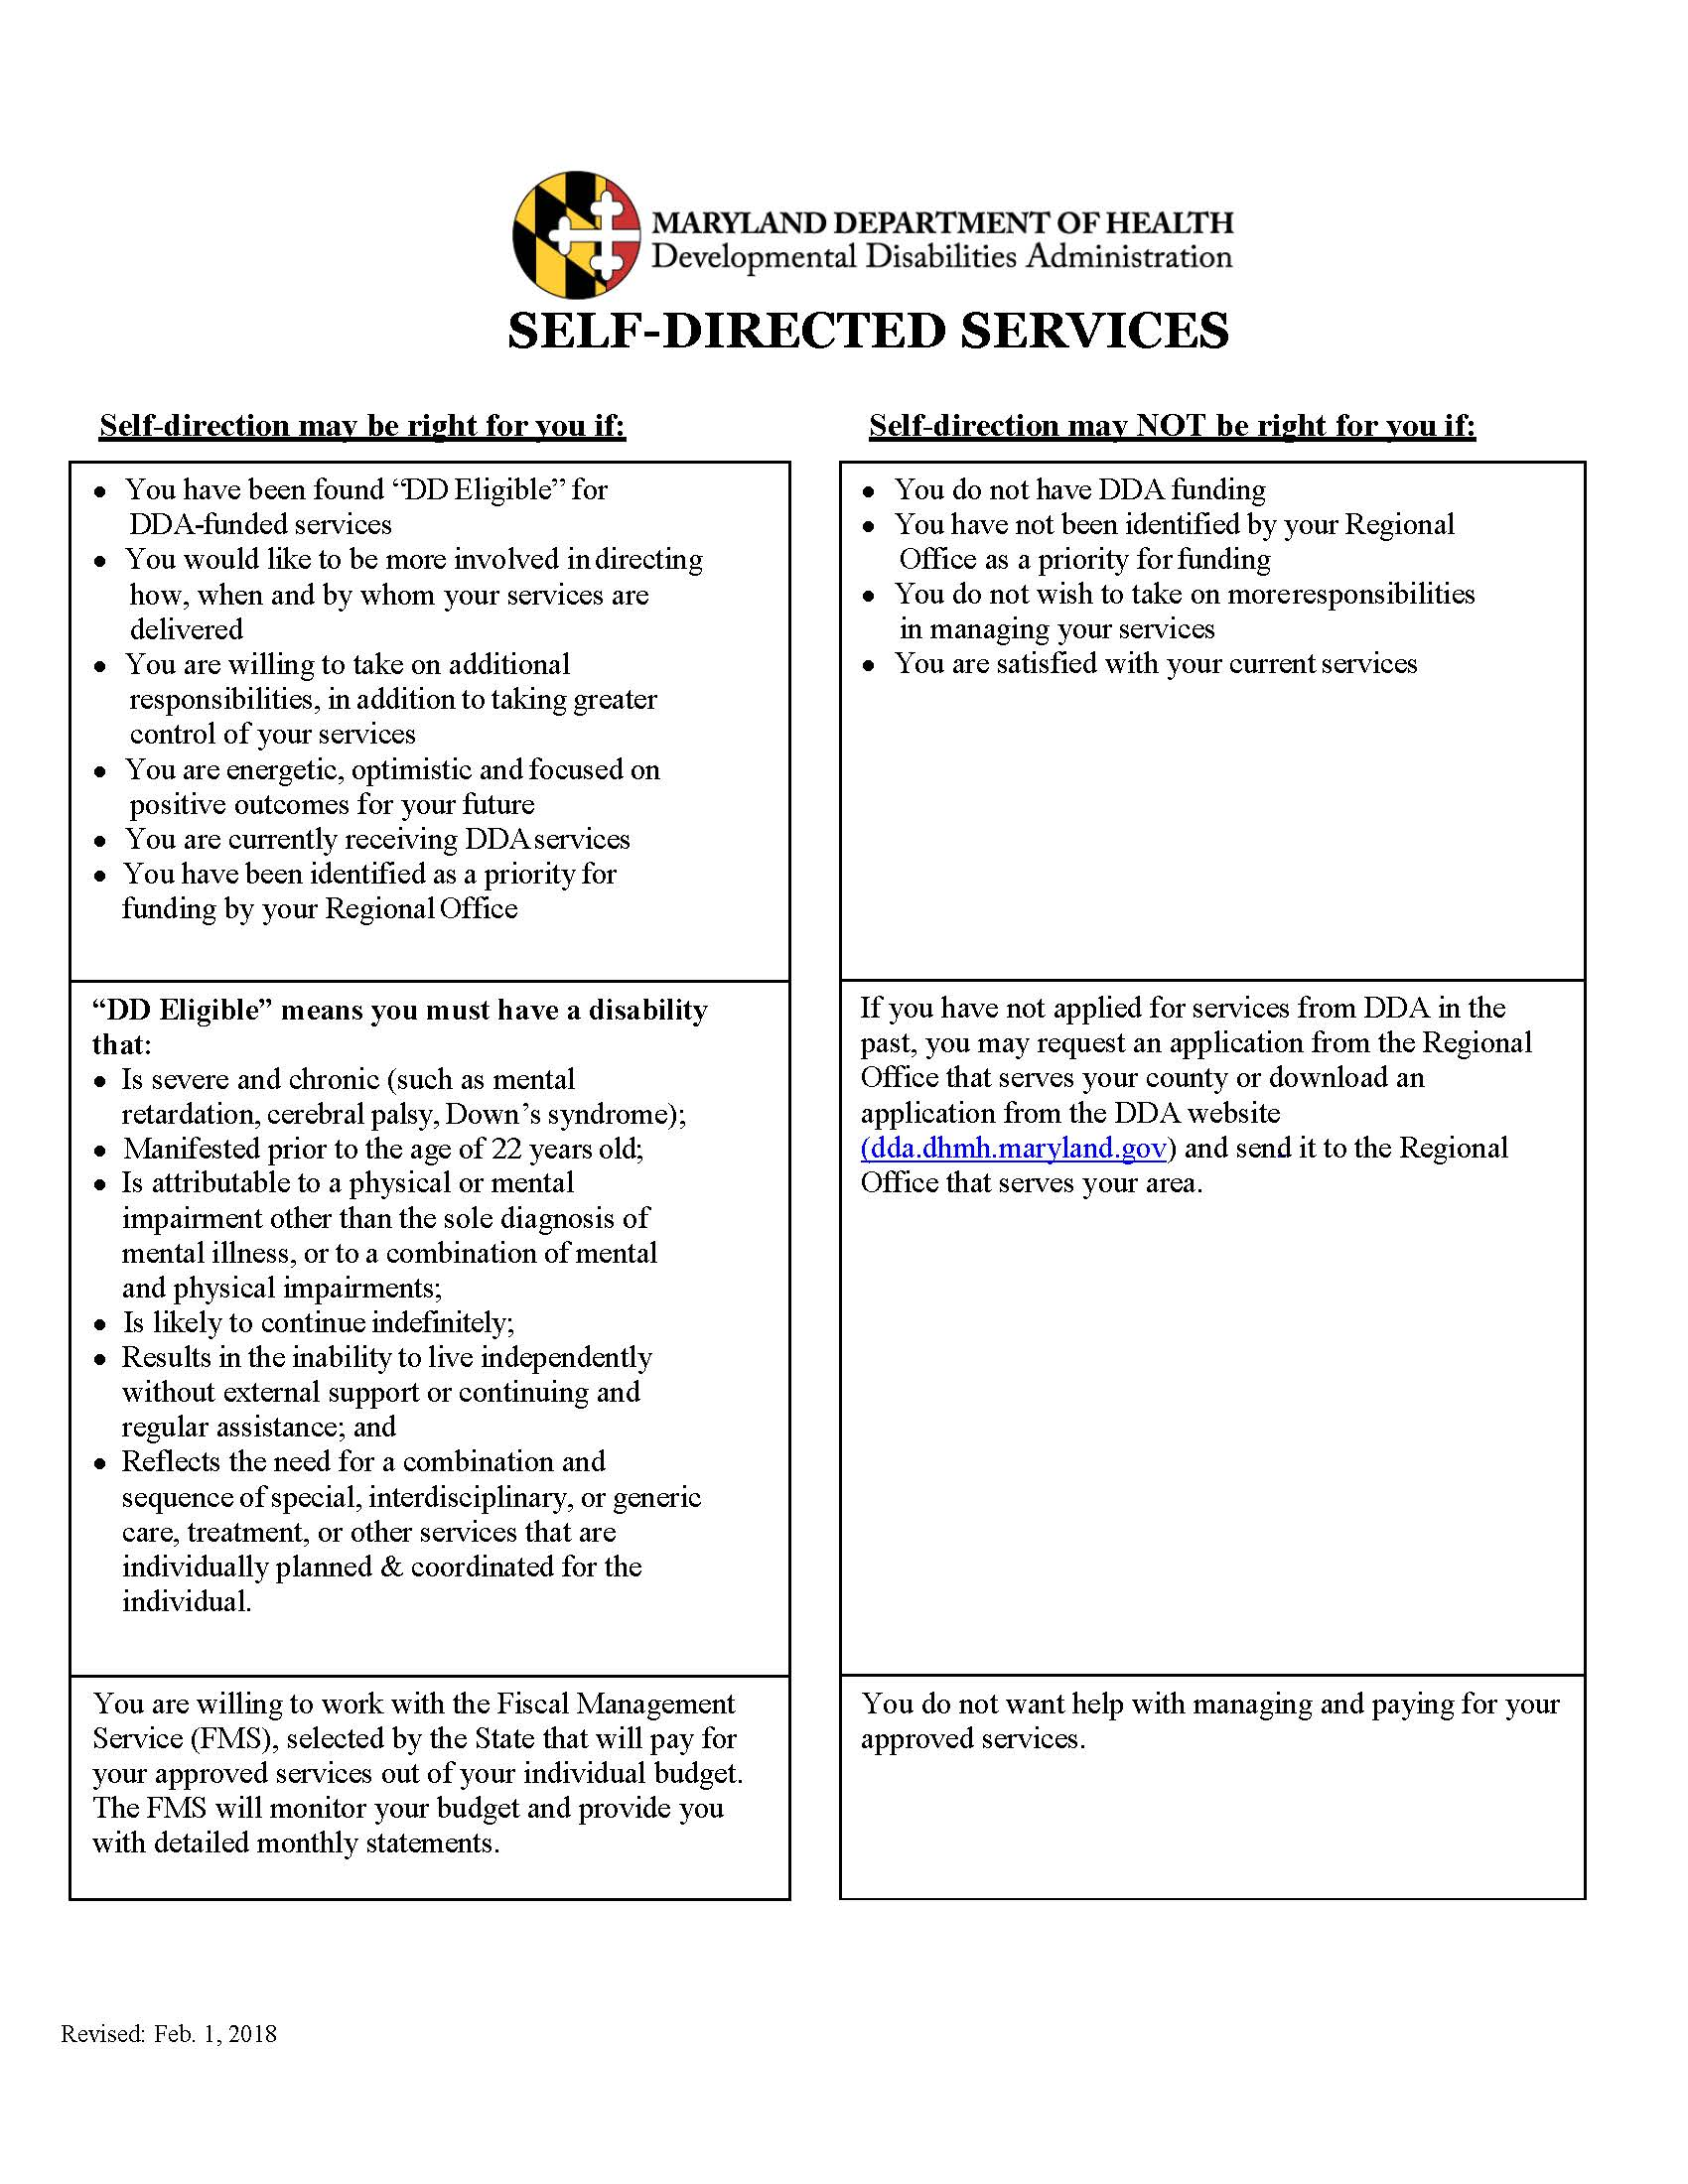 Self-Directed Services (Maryland)